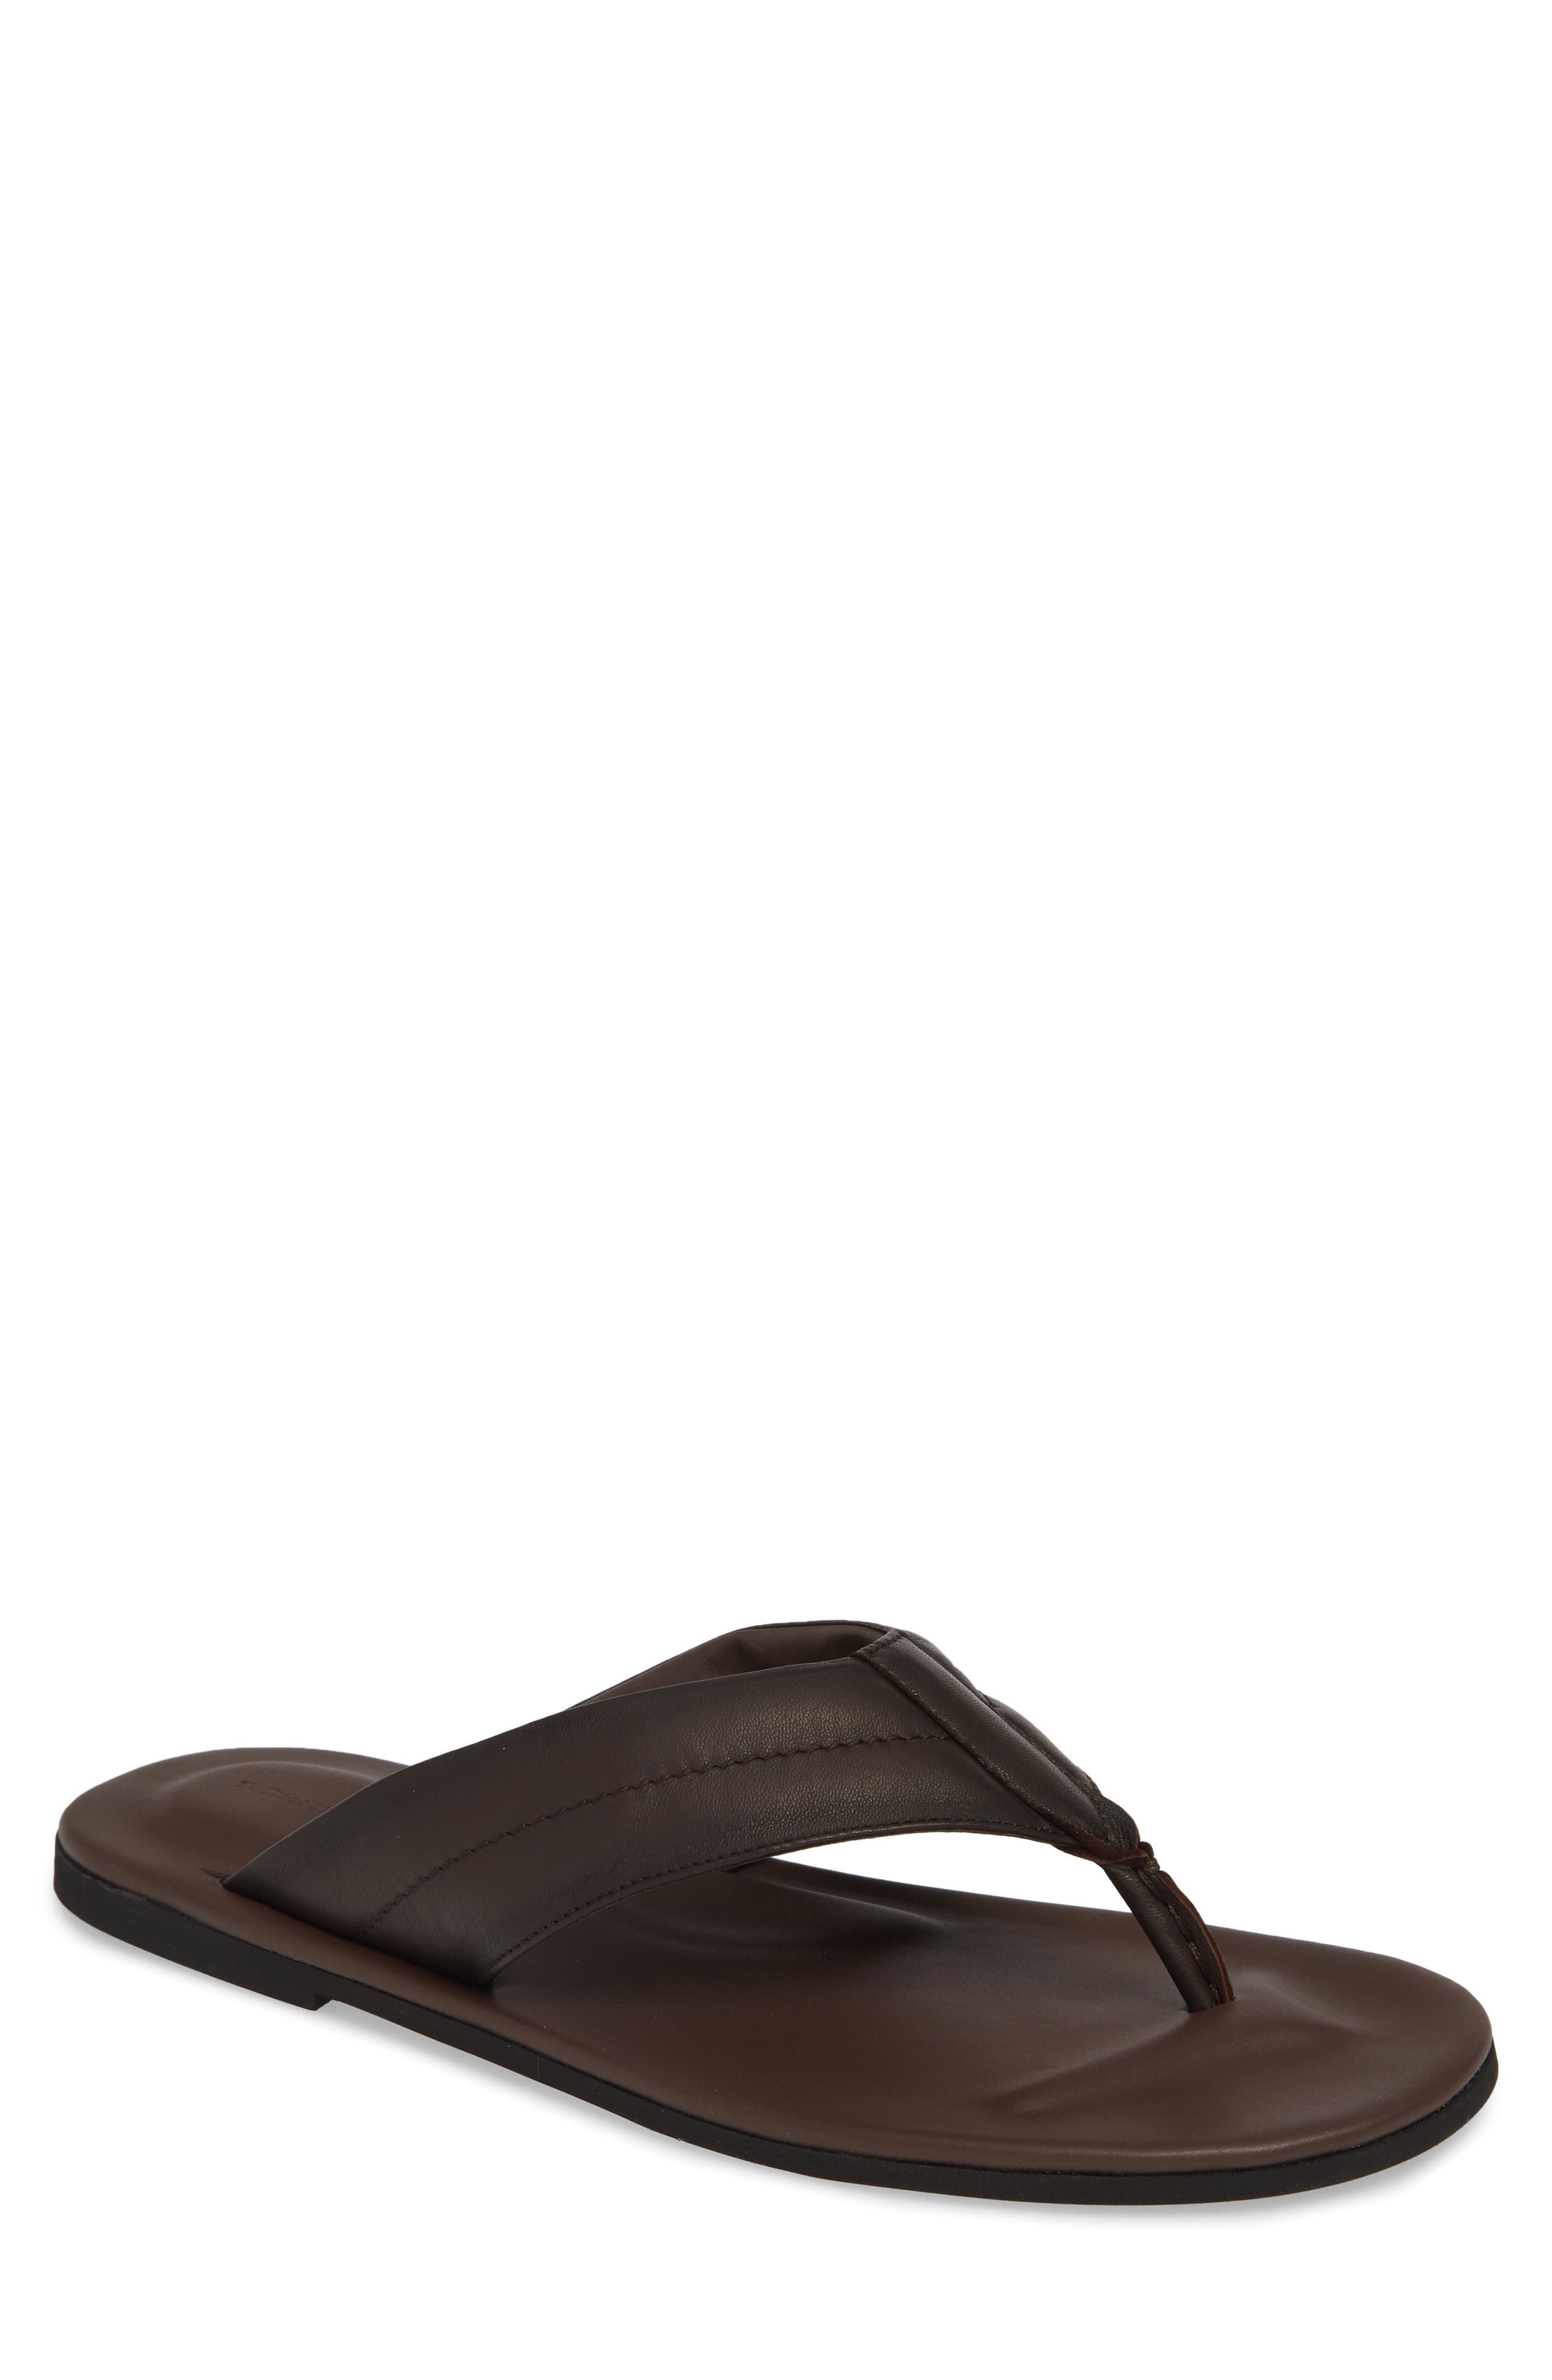 To Boot New York Grande Flip Flop, Brown